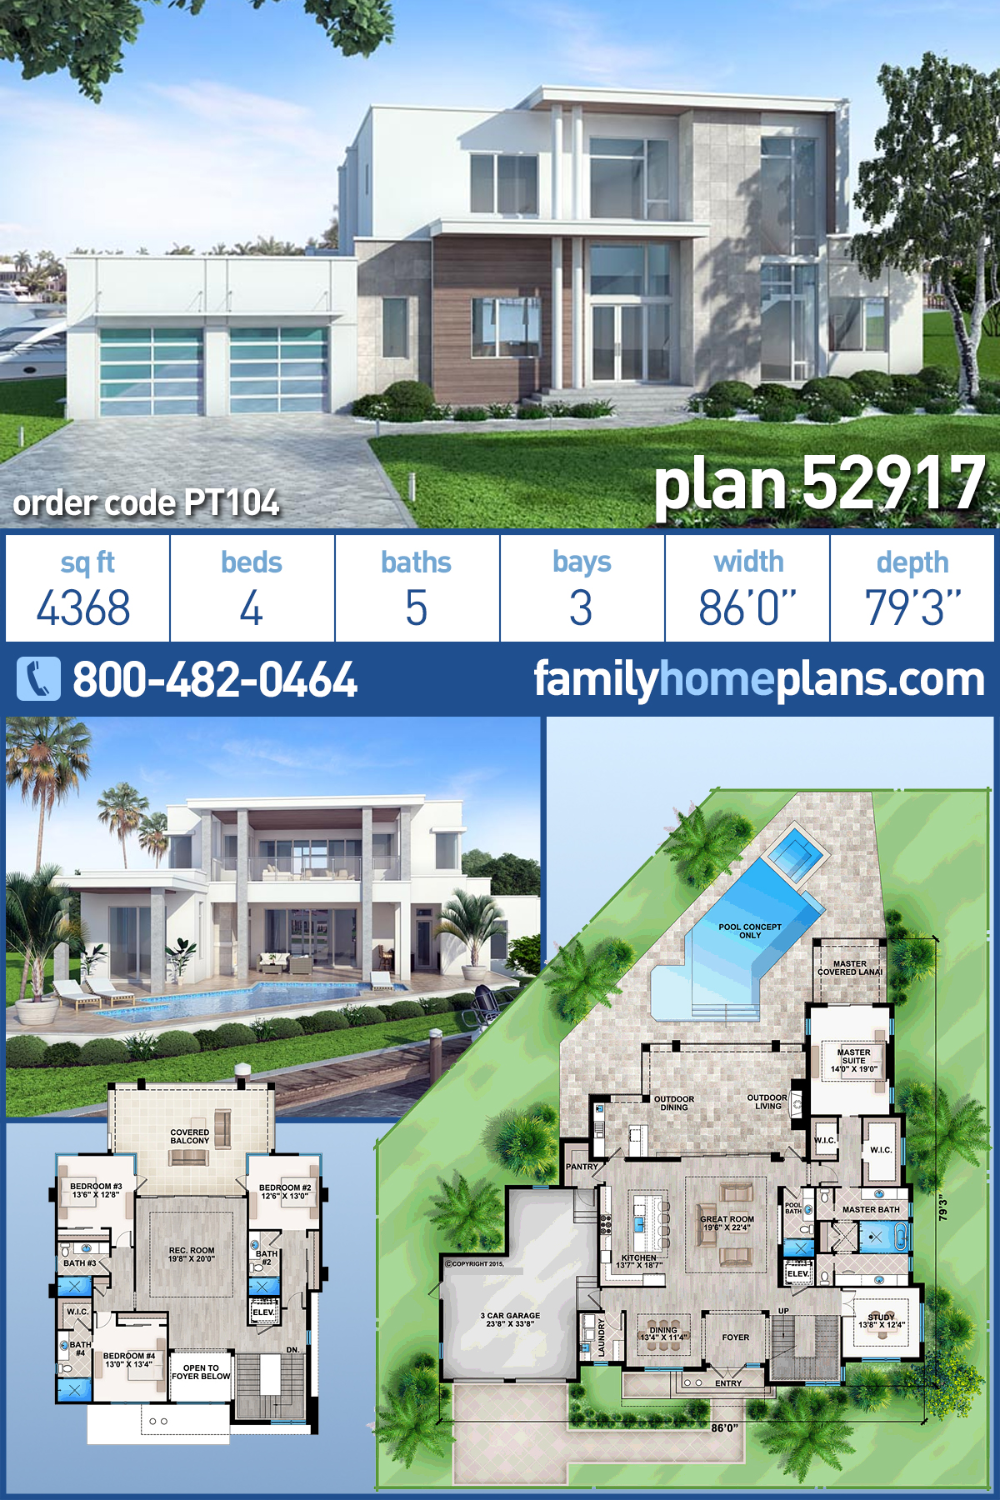 Modern Style House Plan 52917 With 4 Bed 5 Bath 3 Car Garage Modern Style House Plans Modern House Floor Plans Contemporary House Plans